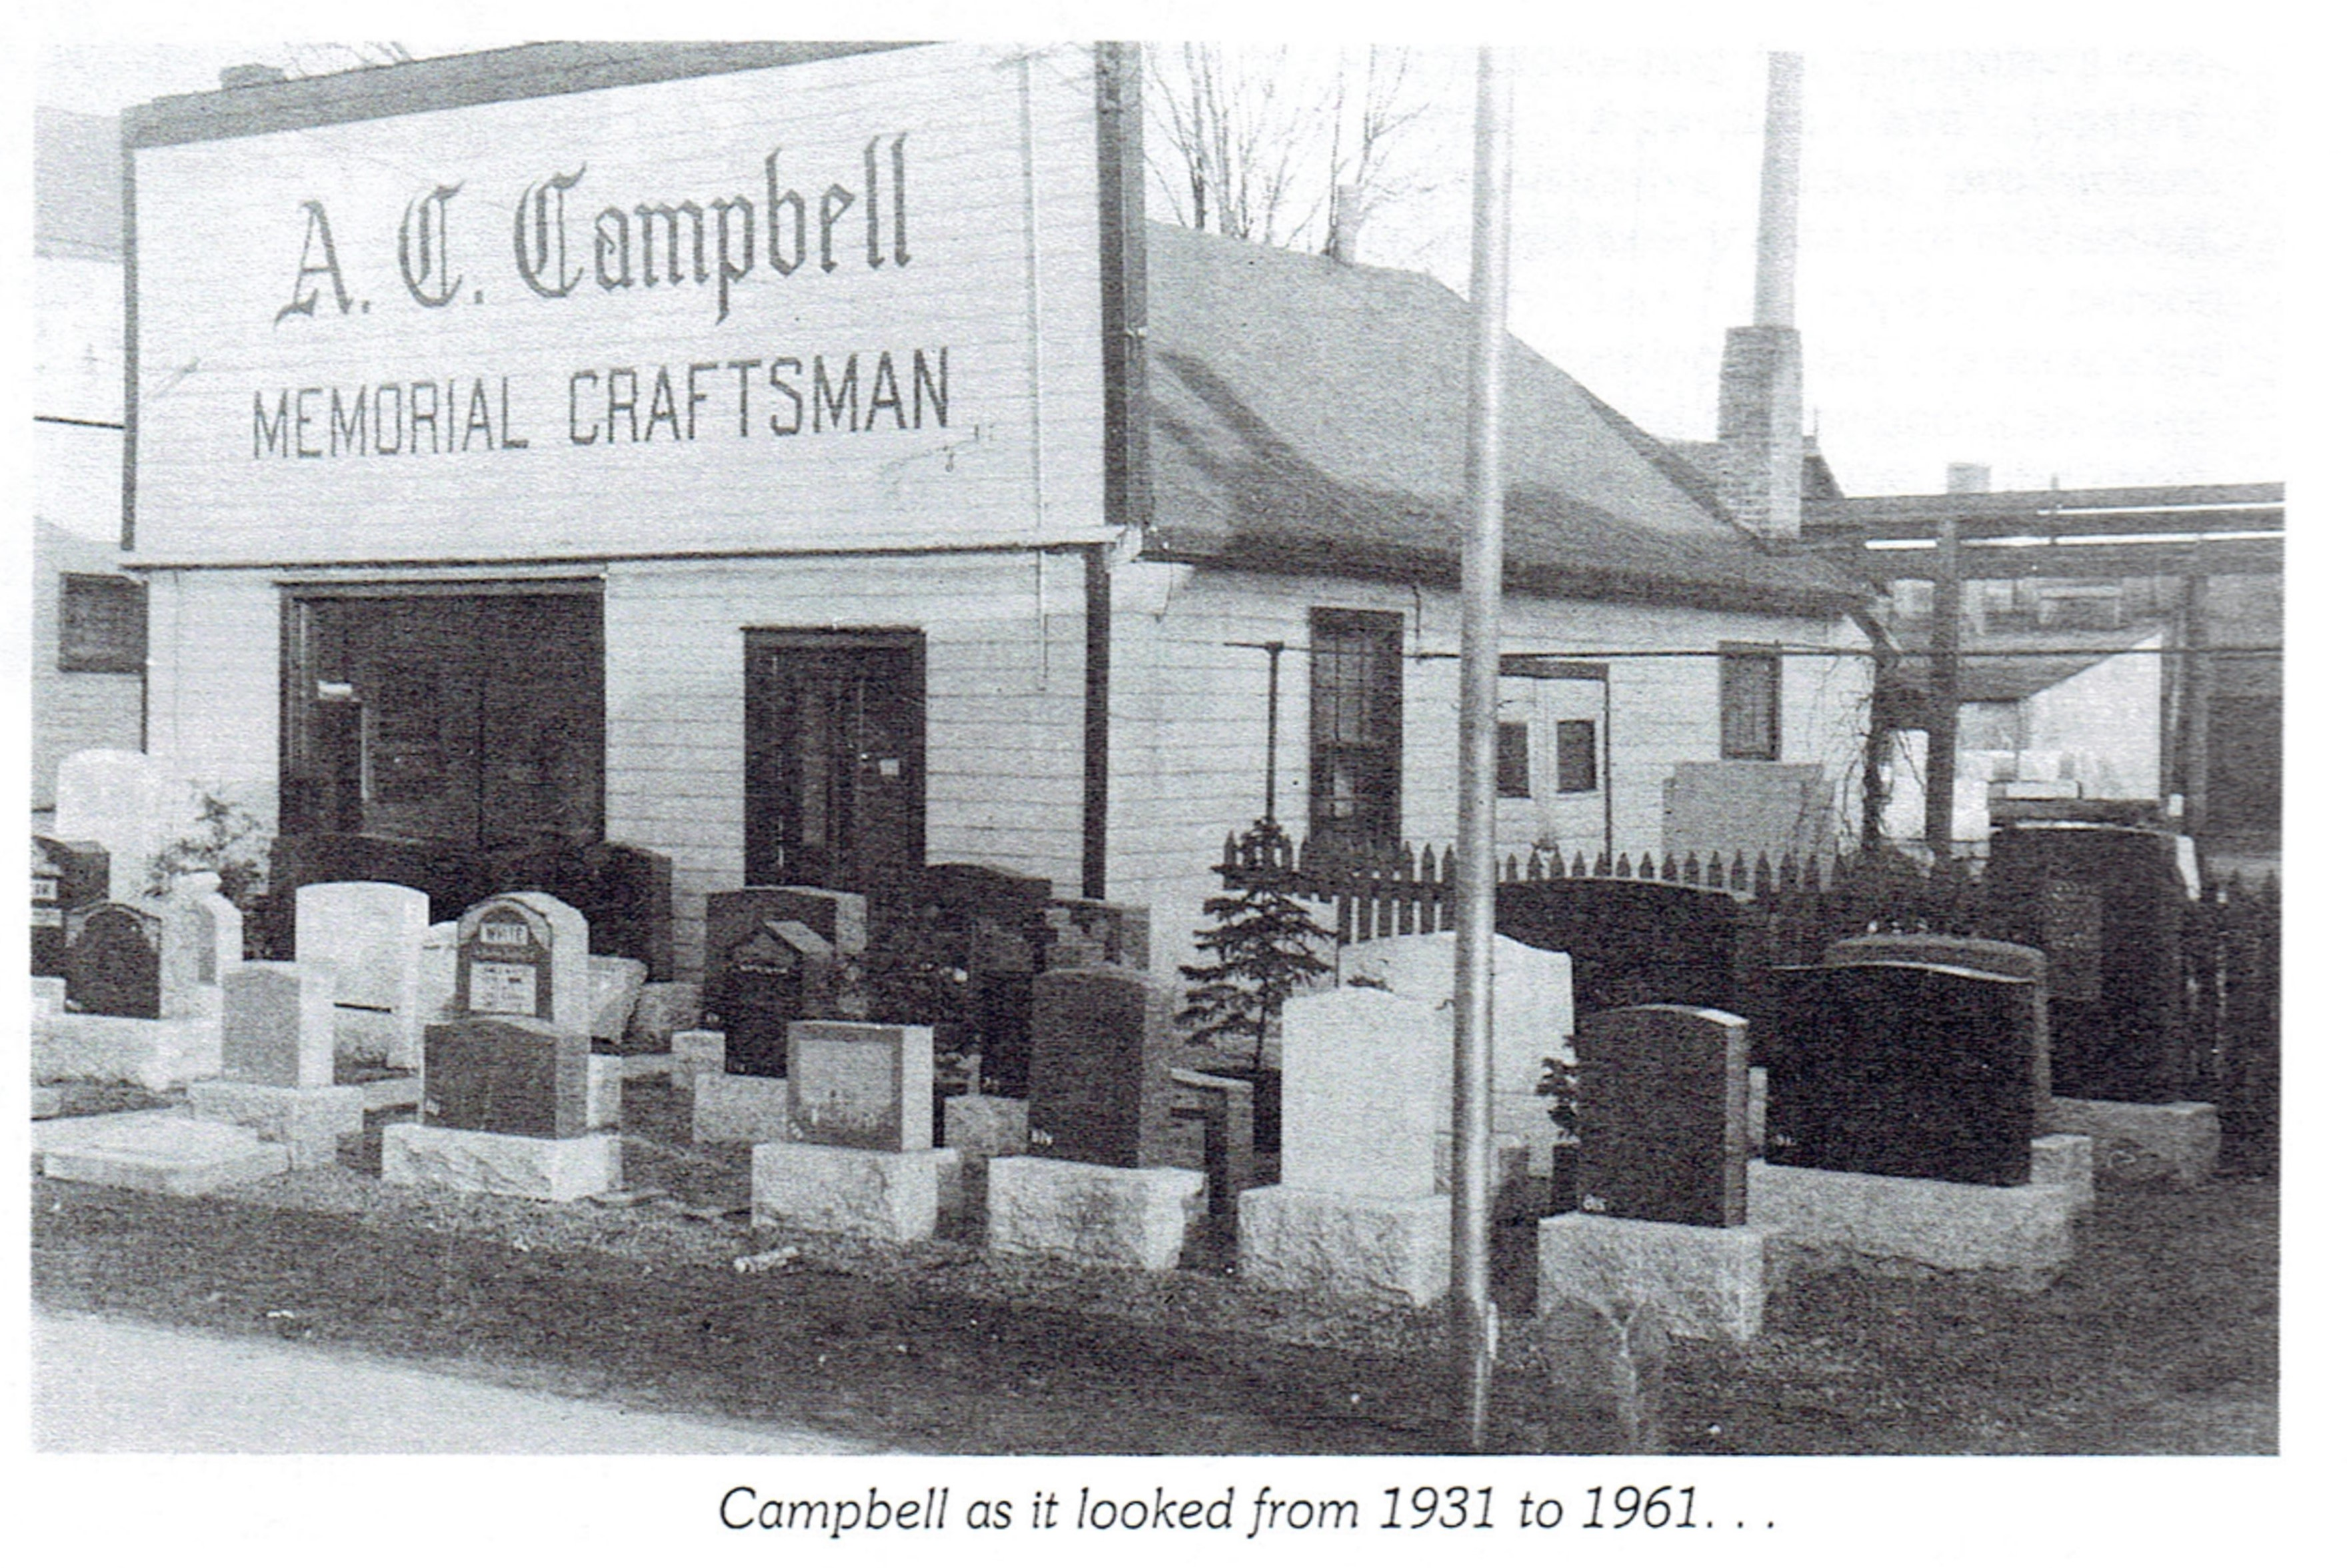 1931 - 1961: A. C. Campbell - Memorial Craftsman